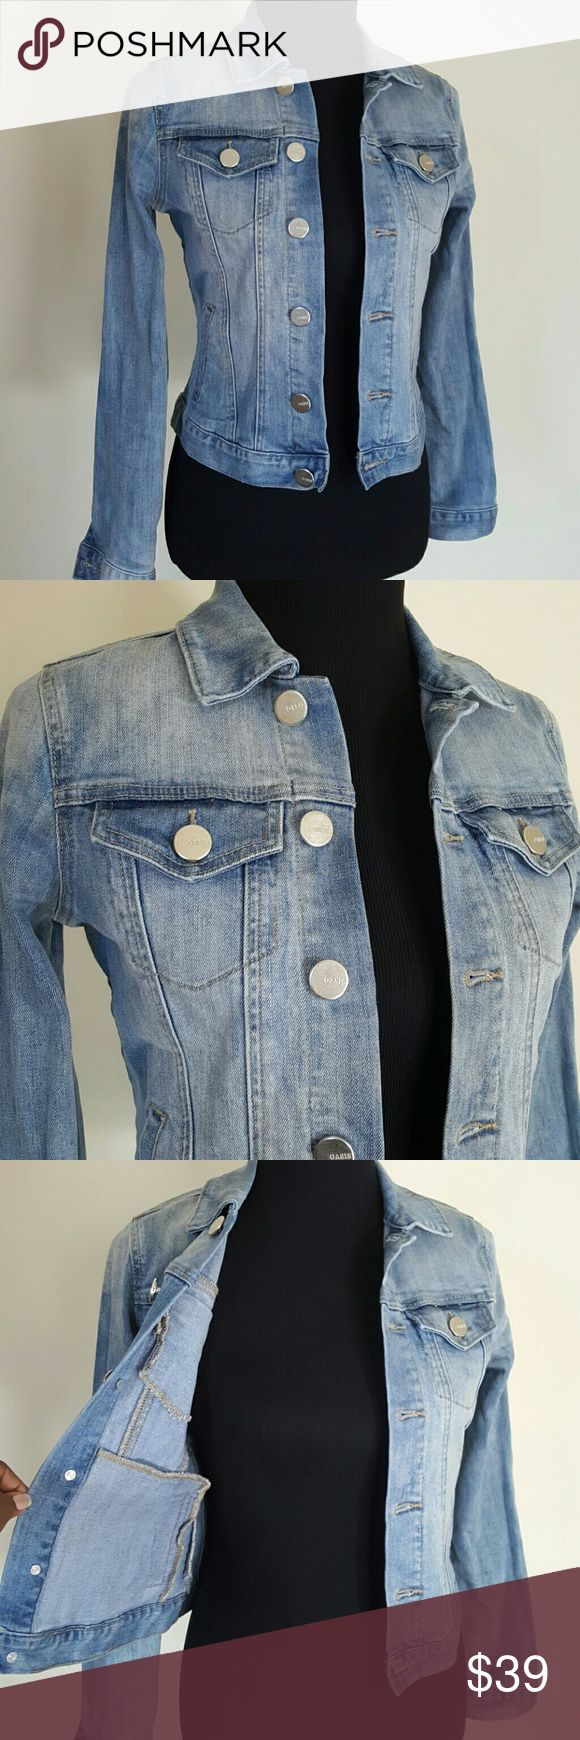 Oasis Baby Blue Denim Jean Jacket UK Size 8 A closet must! Great condition  Multiple pockets interior and exterior  Cotton blend fabric size UK8 Oasis Jackets & Coats